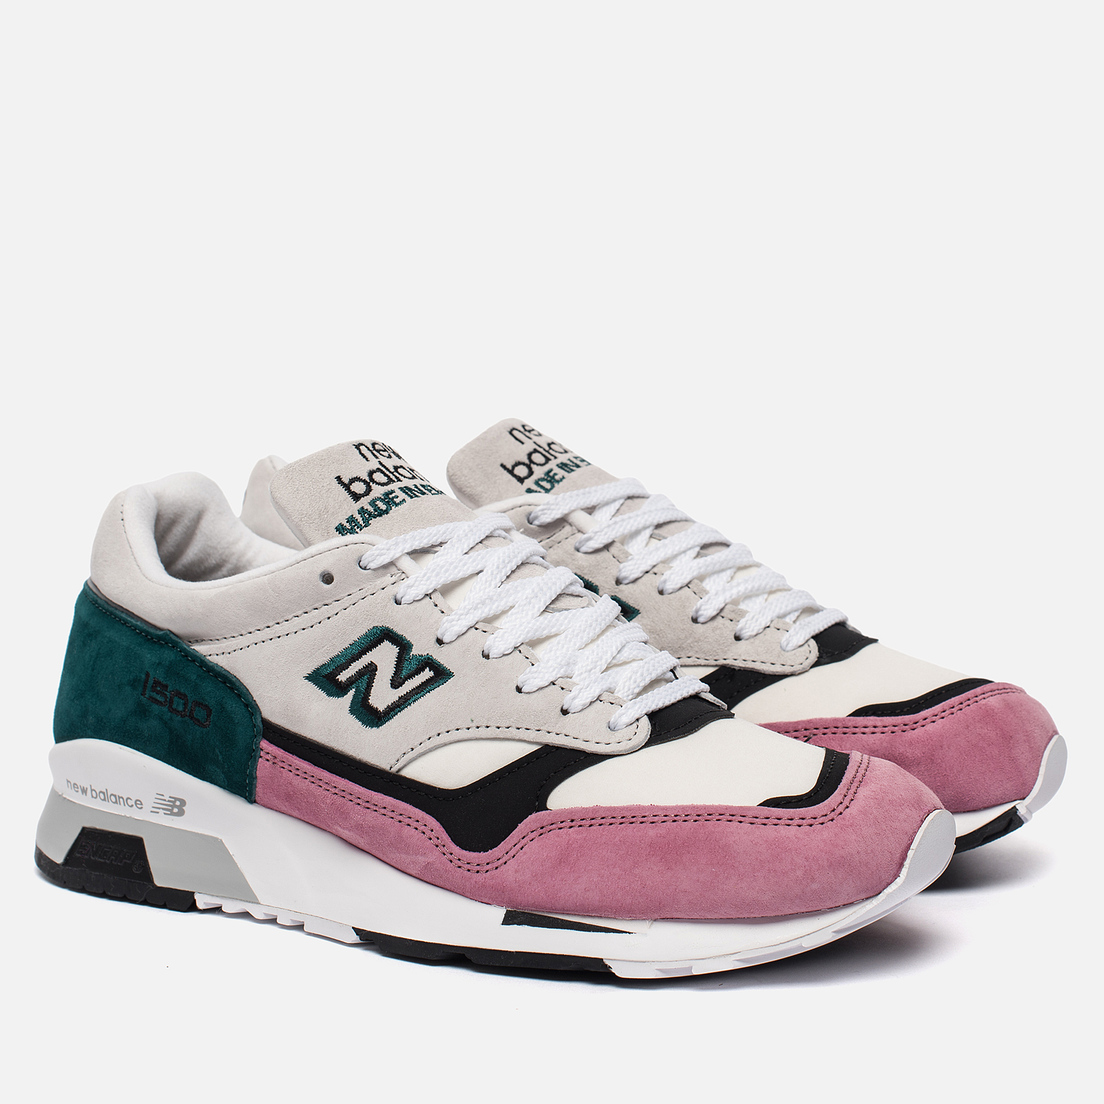 new balance flamingo pack, OFF 77%,Welcome to buy!